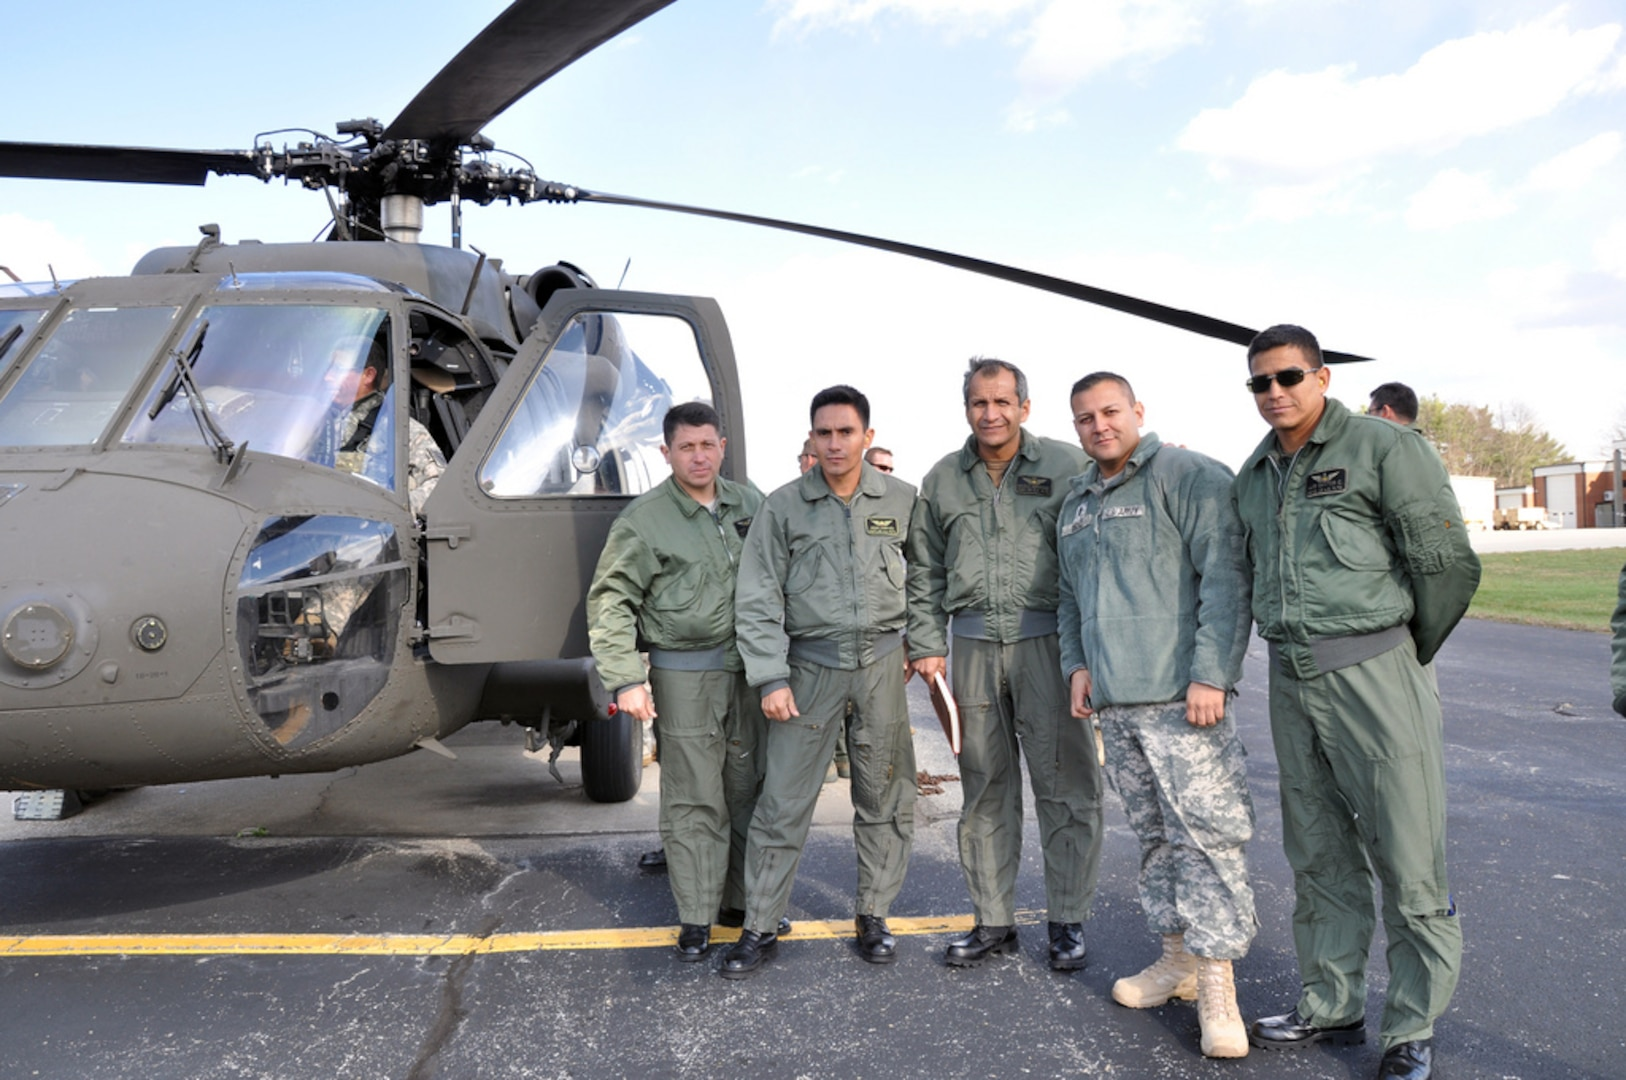 The member of the Kentucky Army National Guard 63rd Theater Aviation Brigade stands with the members of the Ecuadorian Army Air Group during their visit at Boone National Guard Center in Frankfort, Ky., Nov. 17, 2011. The Kentucky National Guard hosted a team of aviators and maintainers from the Republic of Ecuador Army Air Group as part of the National Guard State Partnership Program.